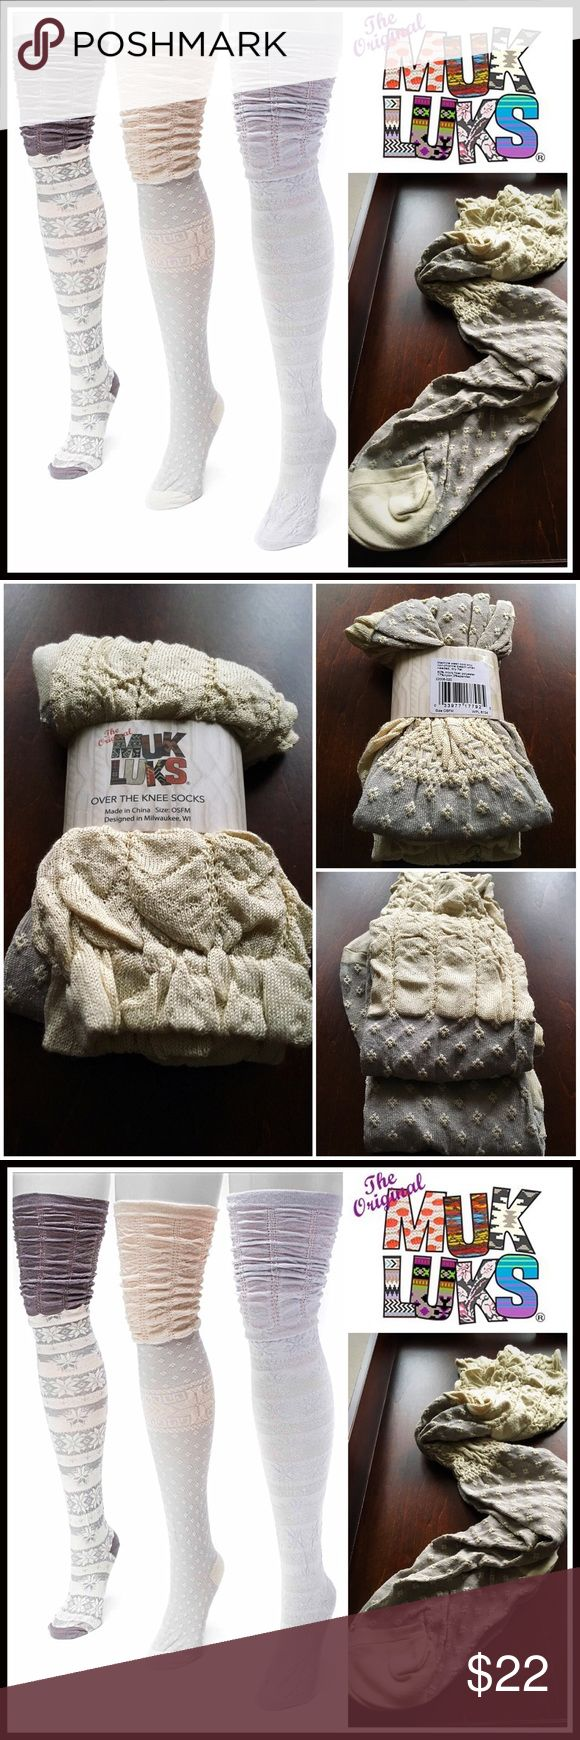 """MUK LUKS BOOT SOCKS Tall Over the Knee Socks 💟NEW WITH TAGS💟 MUK LUKS BOOT SOCKS Tall Over the Knee Thigh Highs    * Super soft, high quality textured & embroidered fabric  * Stretch-to-fit construction w/crochet lace ruffle & ribbed cuffs  * Over the knee length & thigh high  * One size fits most, sock sizes 9-11  * Stay up elasticize cuff style  * Approx 25"""" long   FABRIC-Microfiber, nylon, 3% spandex; Machine wash cold COLOR-Oatmeal, Heather grey combo   ❌NO TRADES❌ ✅BUNDLE DISCOUNTS ✅…"""